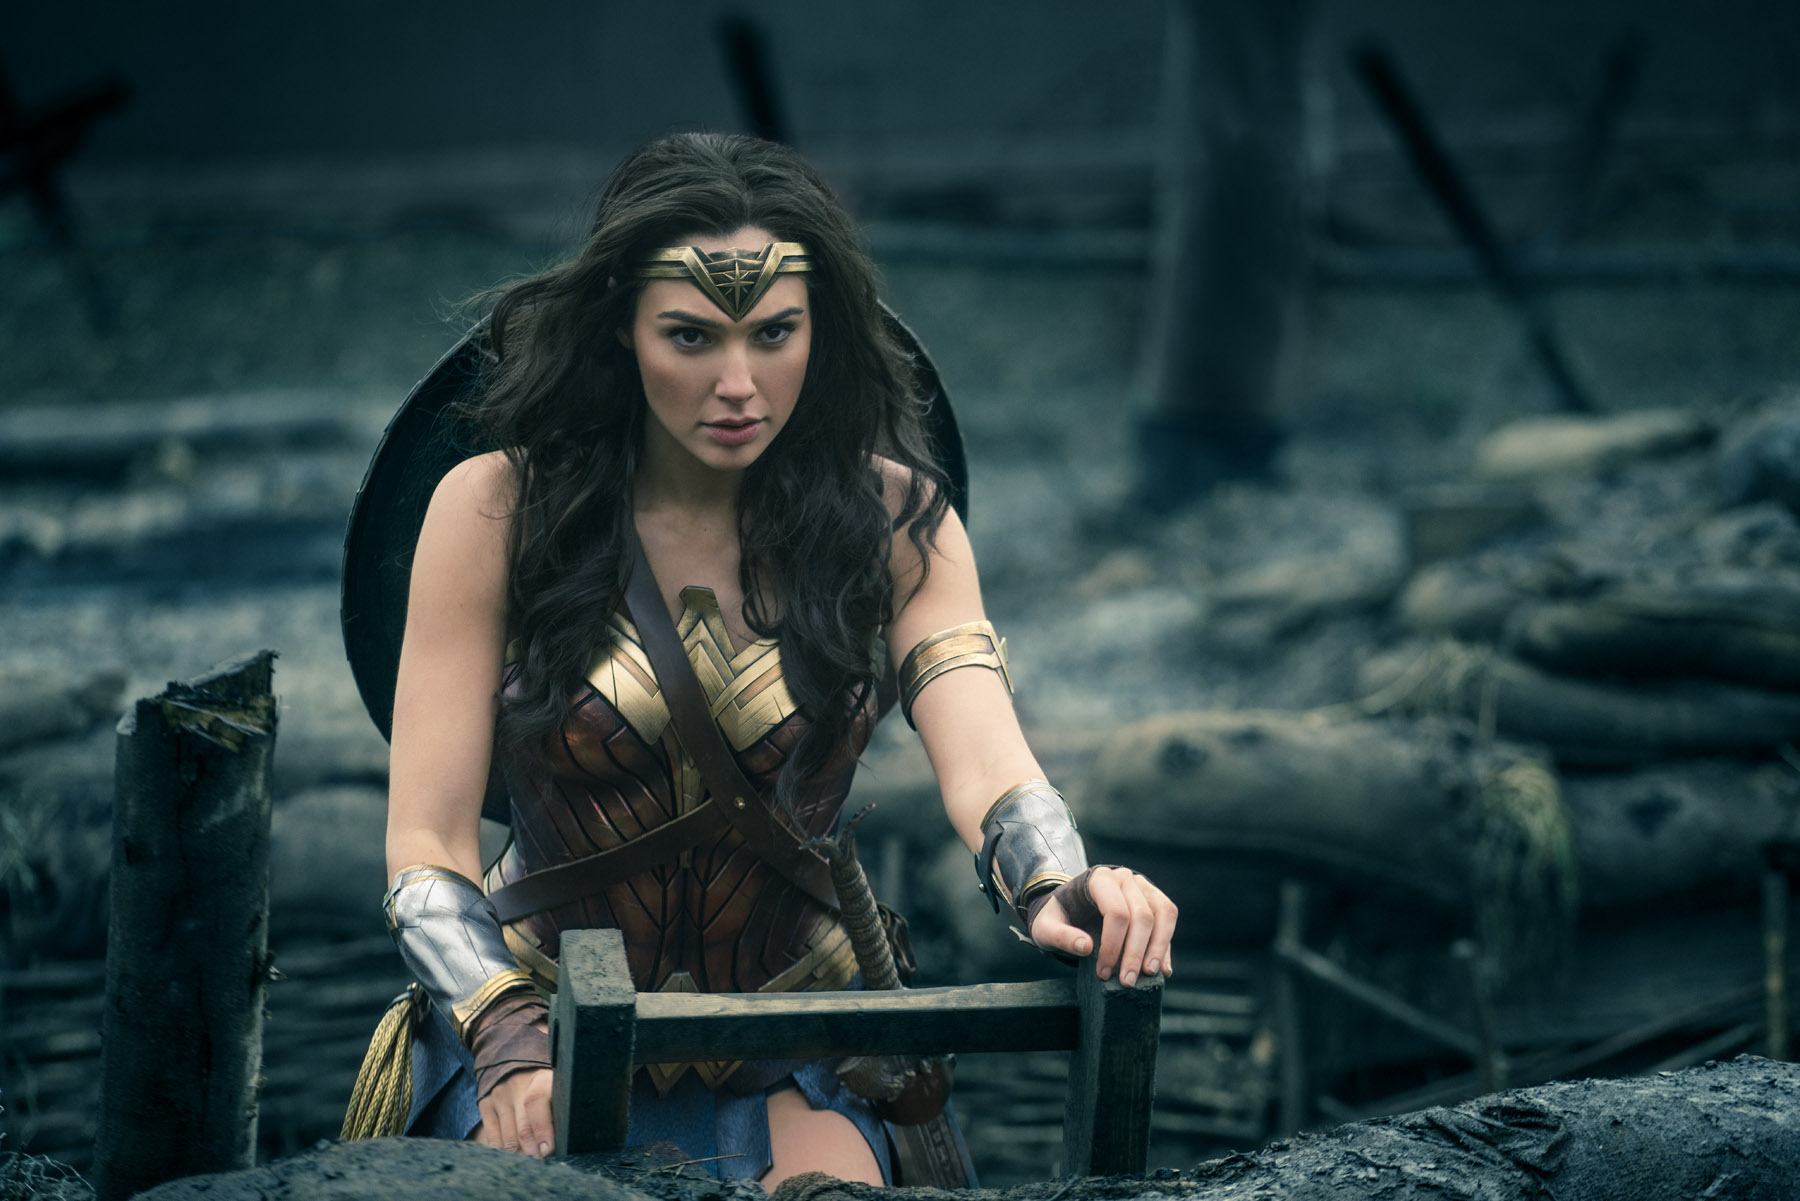 Metic: Reviewing The Guardian's Wonder Woman Review